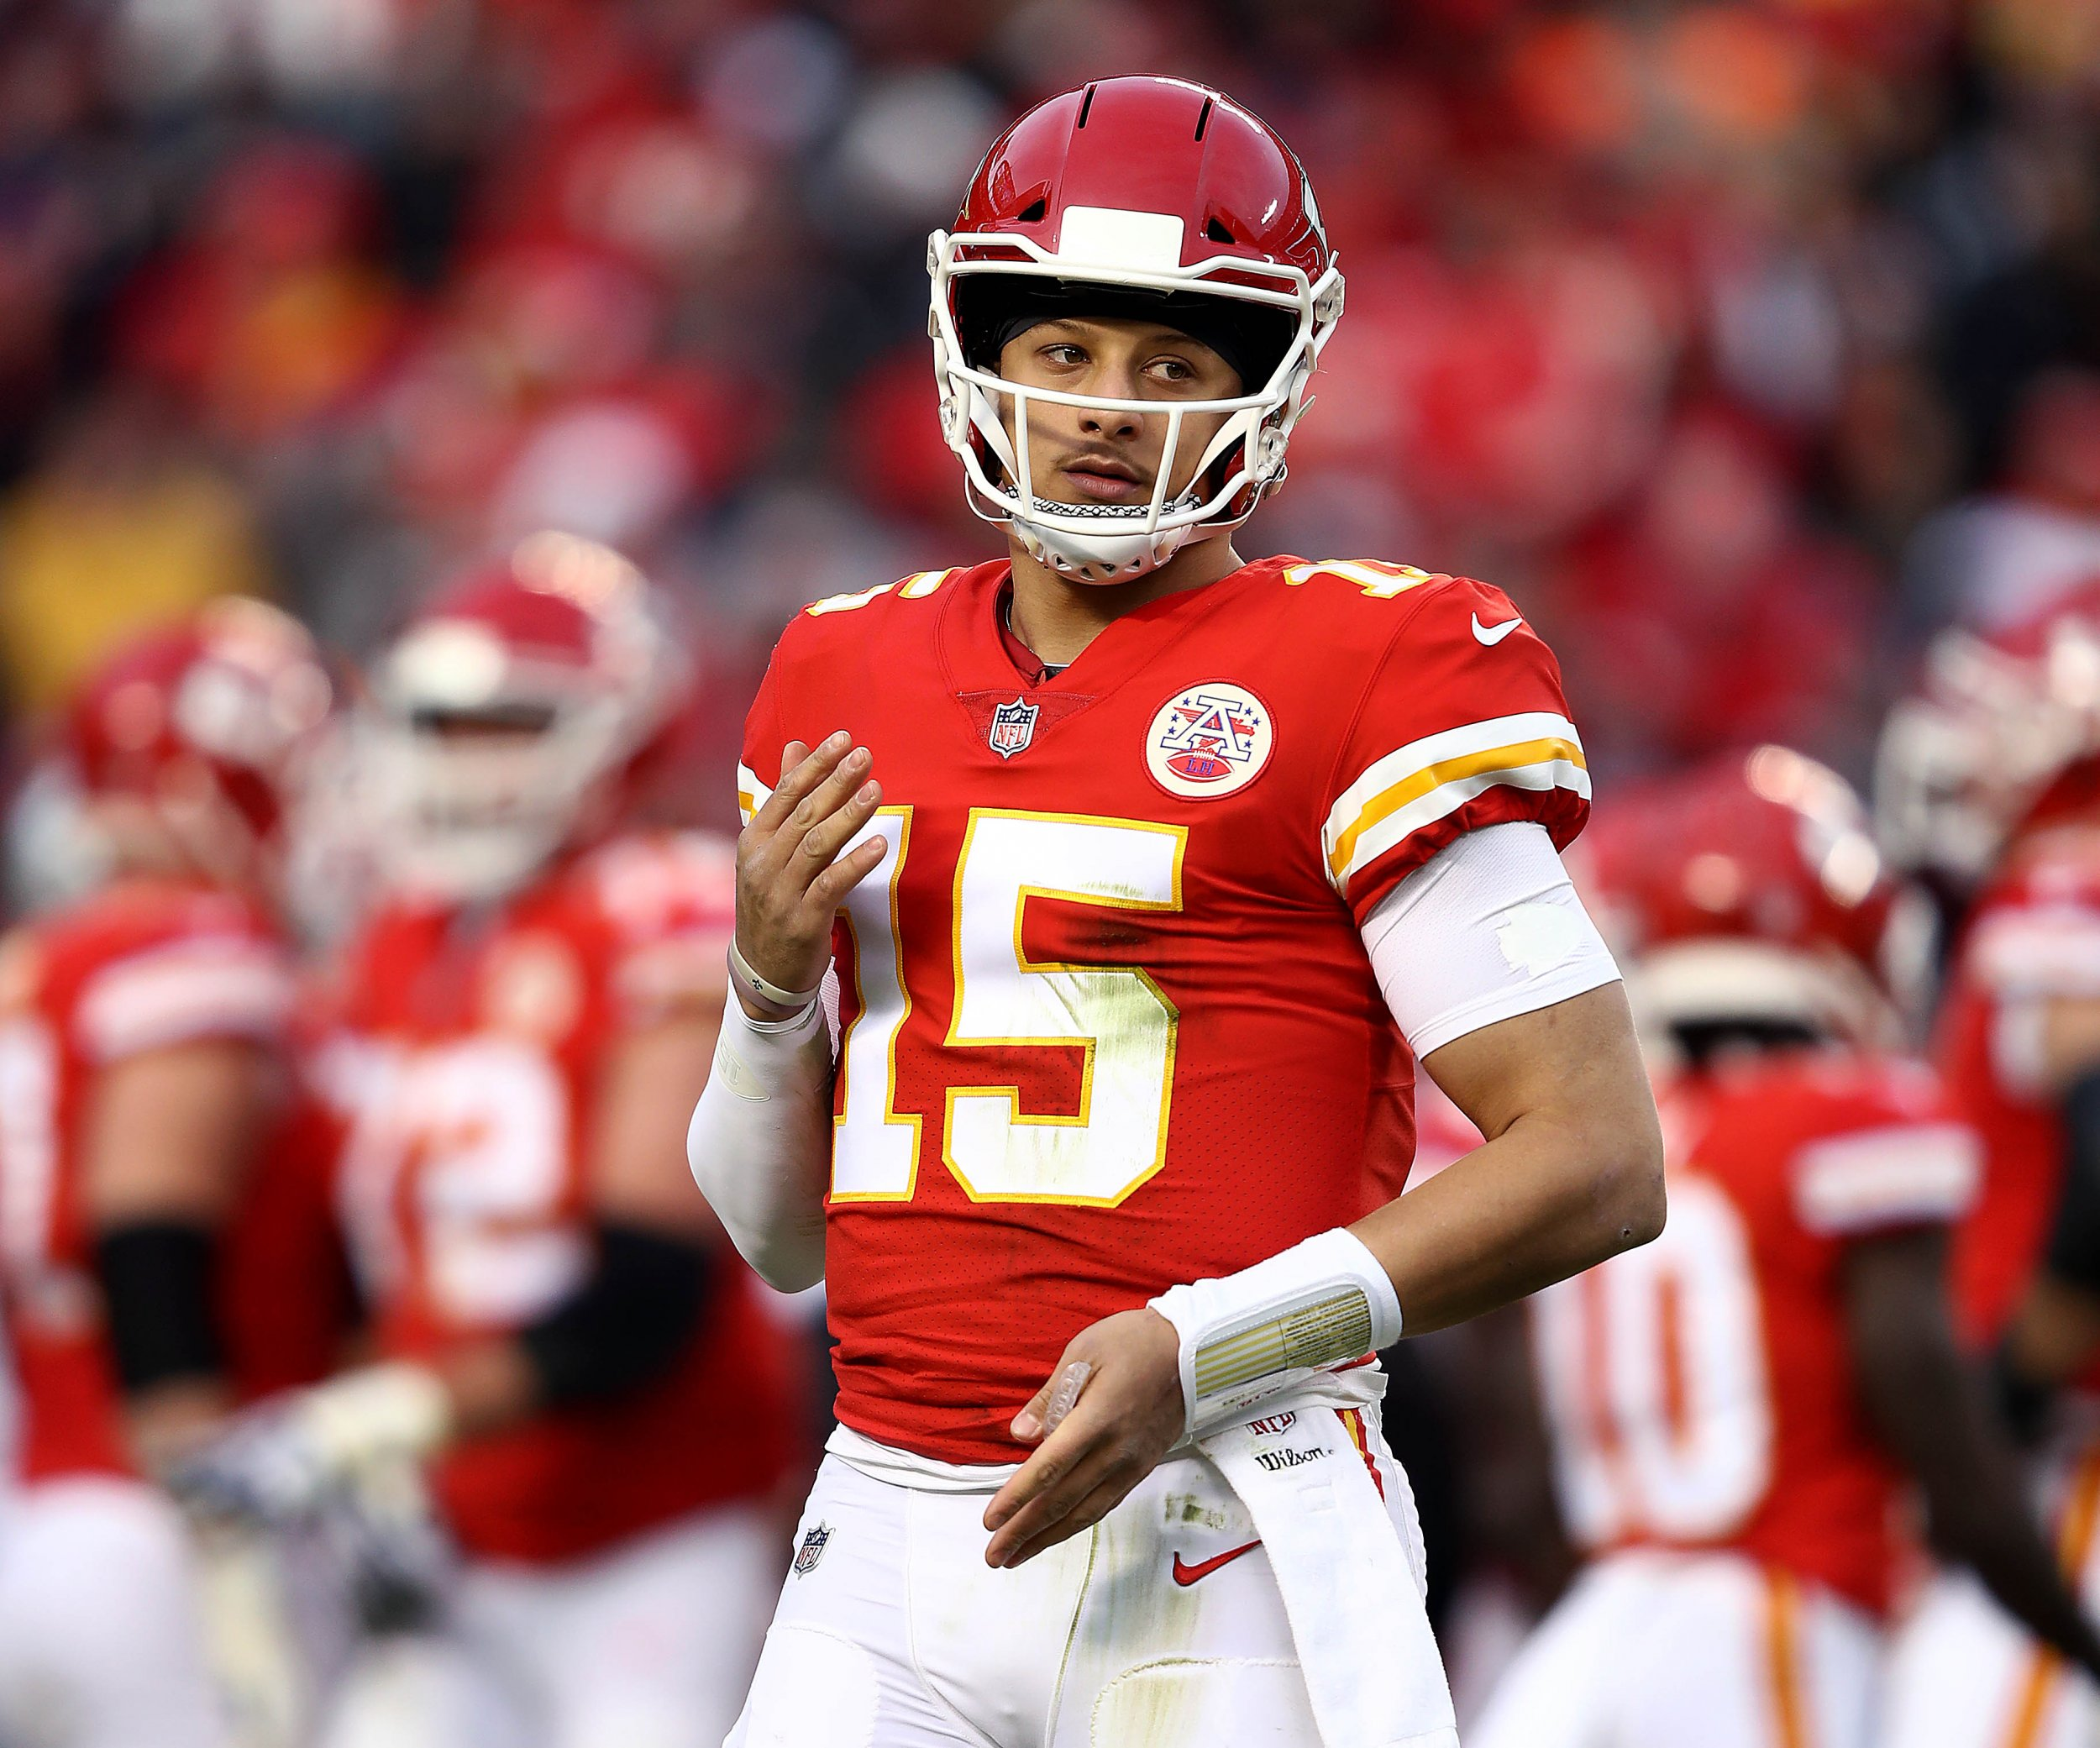 Patrick Mahomes, Kansas City Chiefs